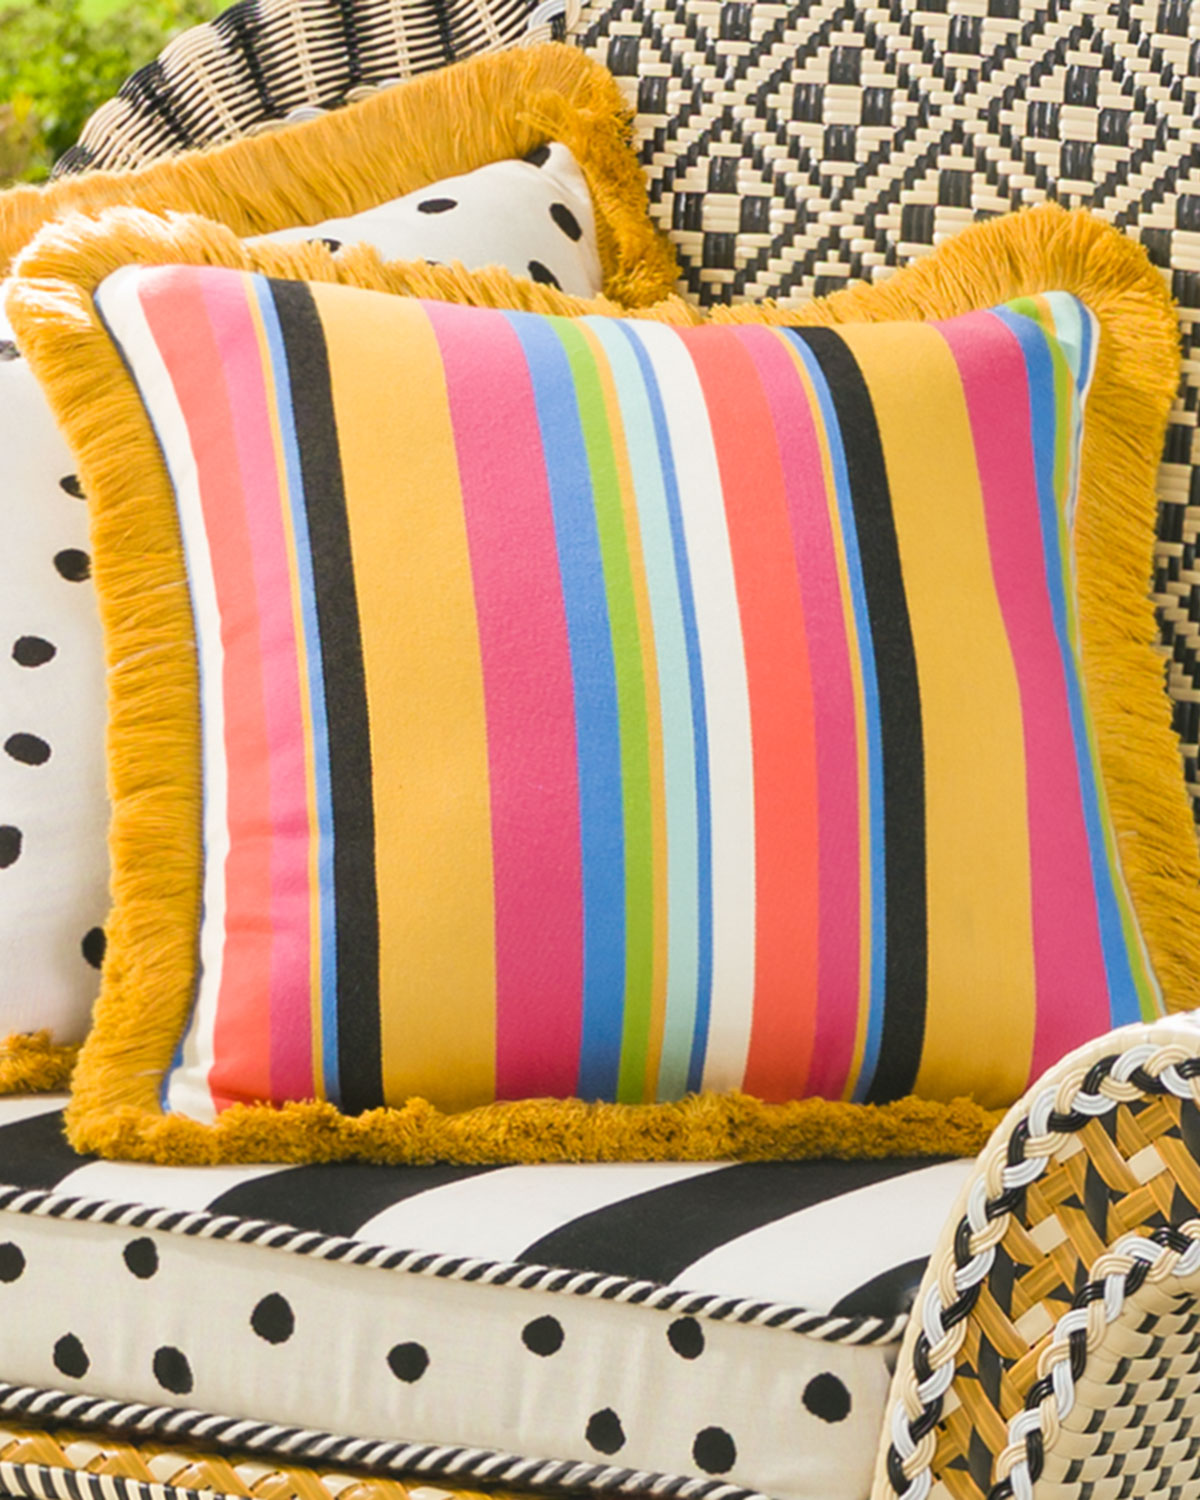 Mackenzie Childs Courtyard Outdoor Throw Pillow Neiman Marcus